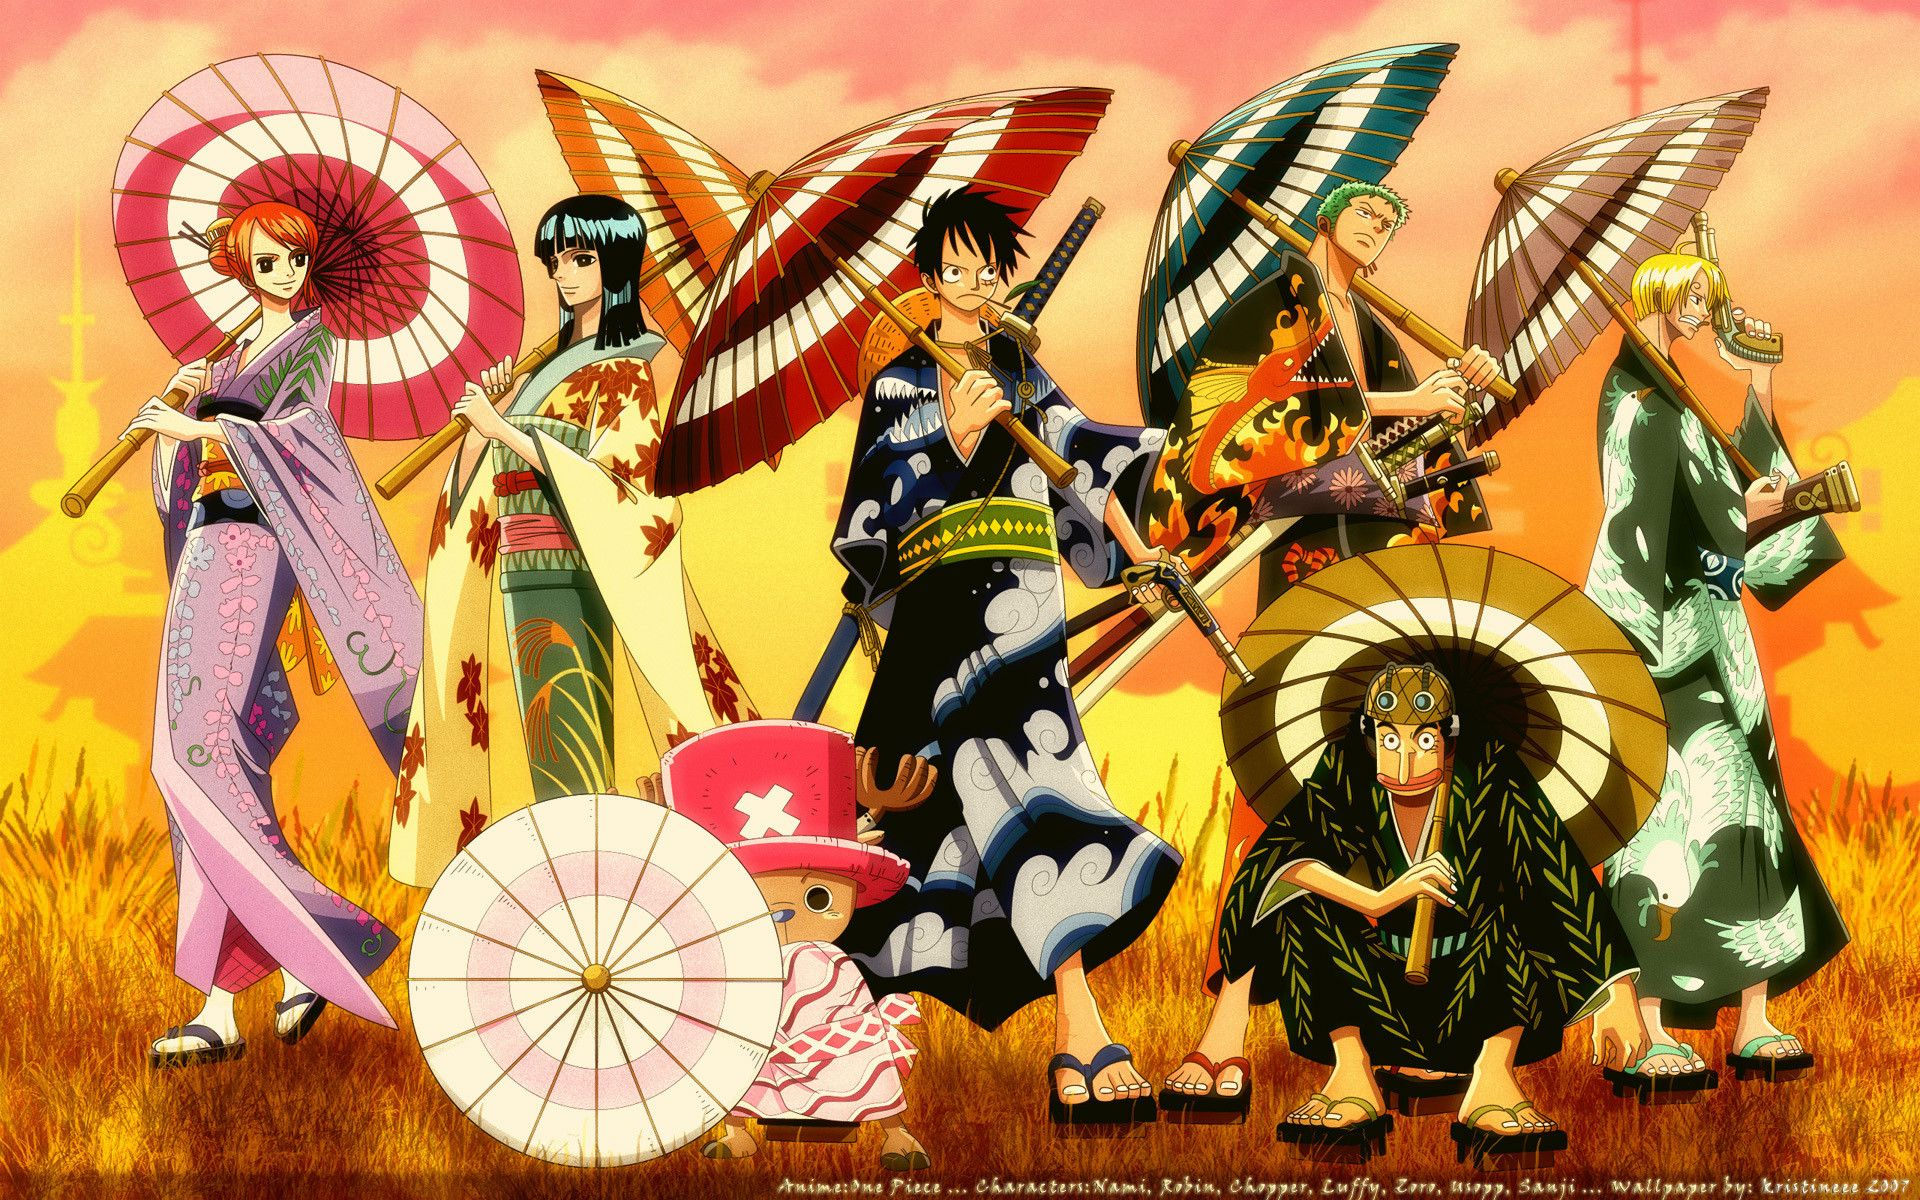 1920x1200 One Piece Wallpaper Hd Gallery Hd Wallpapers Amazing Cool Desktop Wallpapers For Windows Apple Mac One Piece Chapter One Piece Anime One Piece Manga